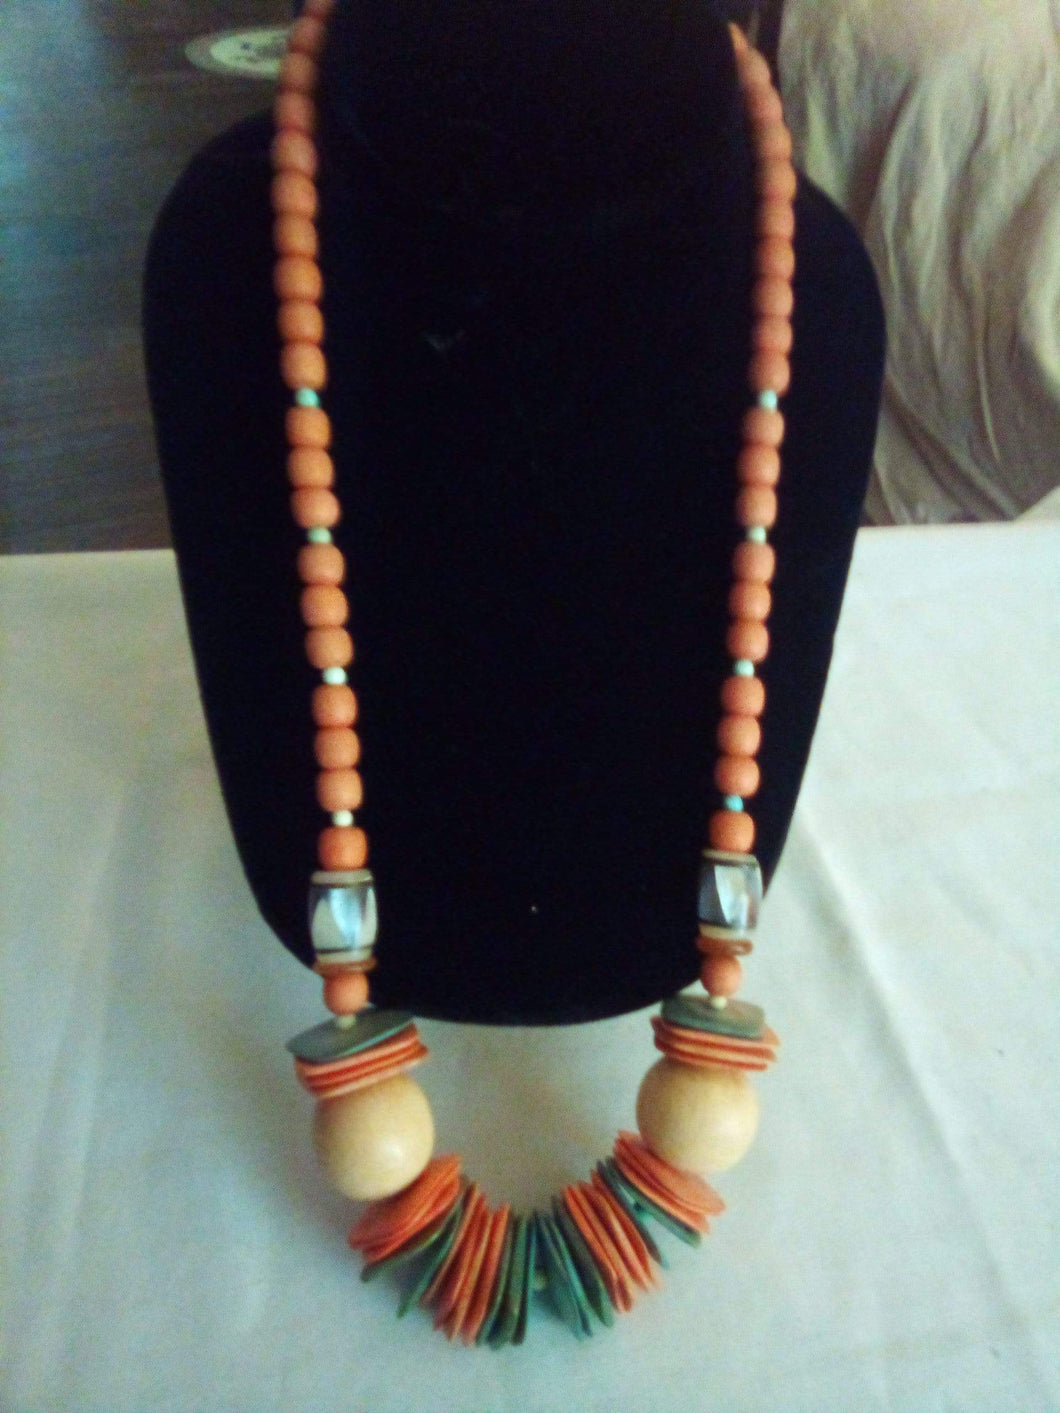 Colorful wooden necklace - B&P'sringsnthings